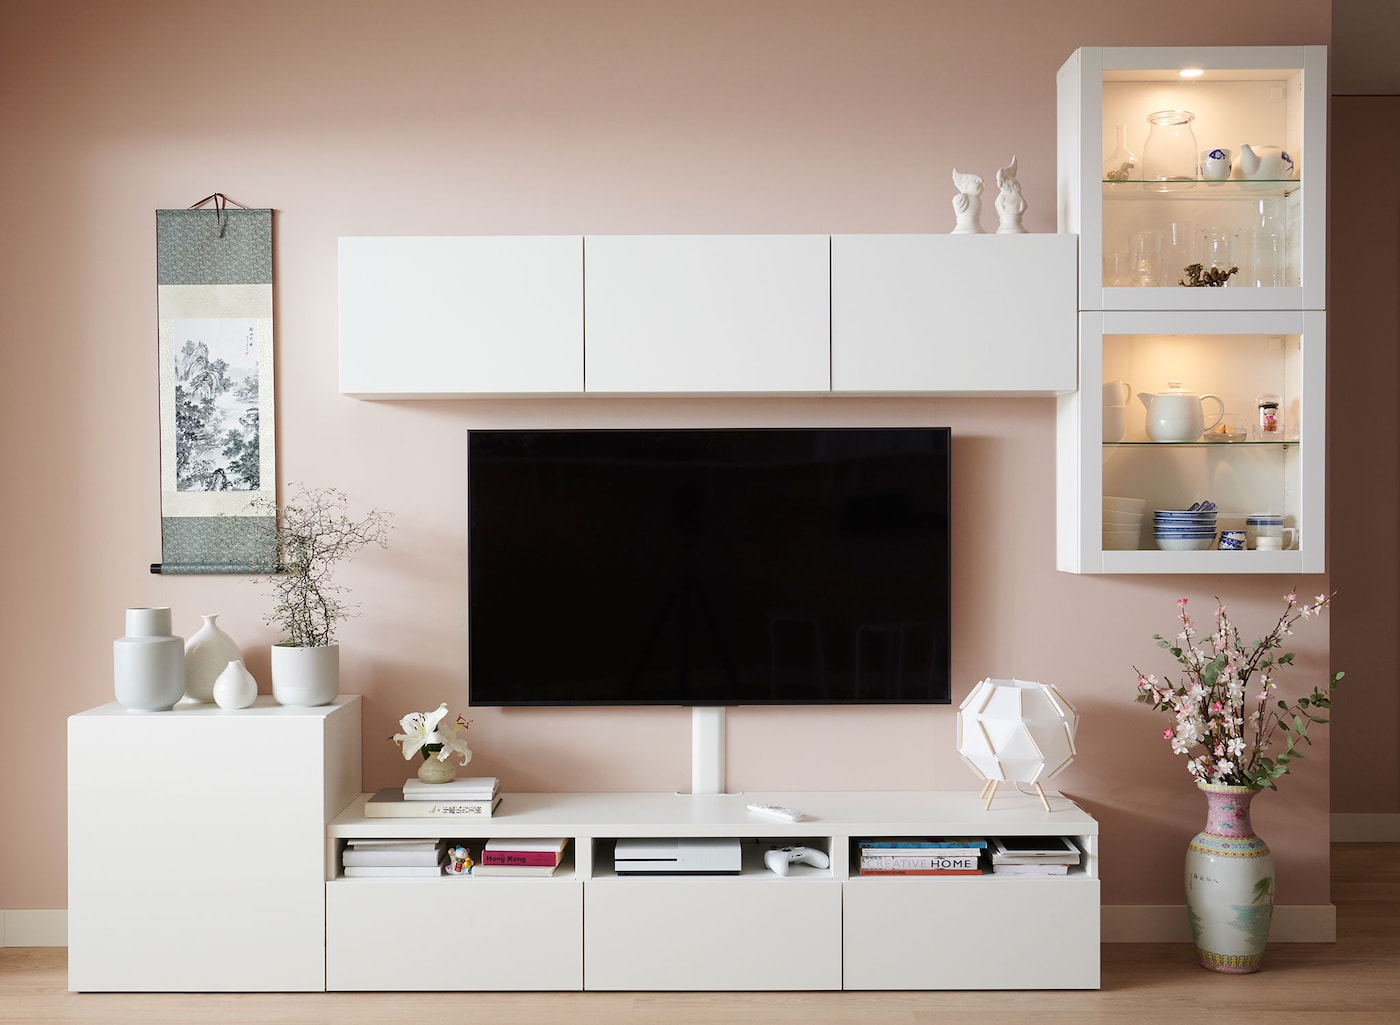 A set of white cabinets arranged on the ground and on the wall surrounding a TV mounted to the wall.